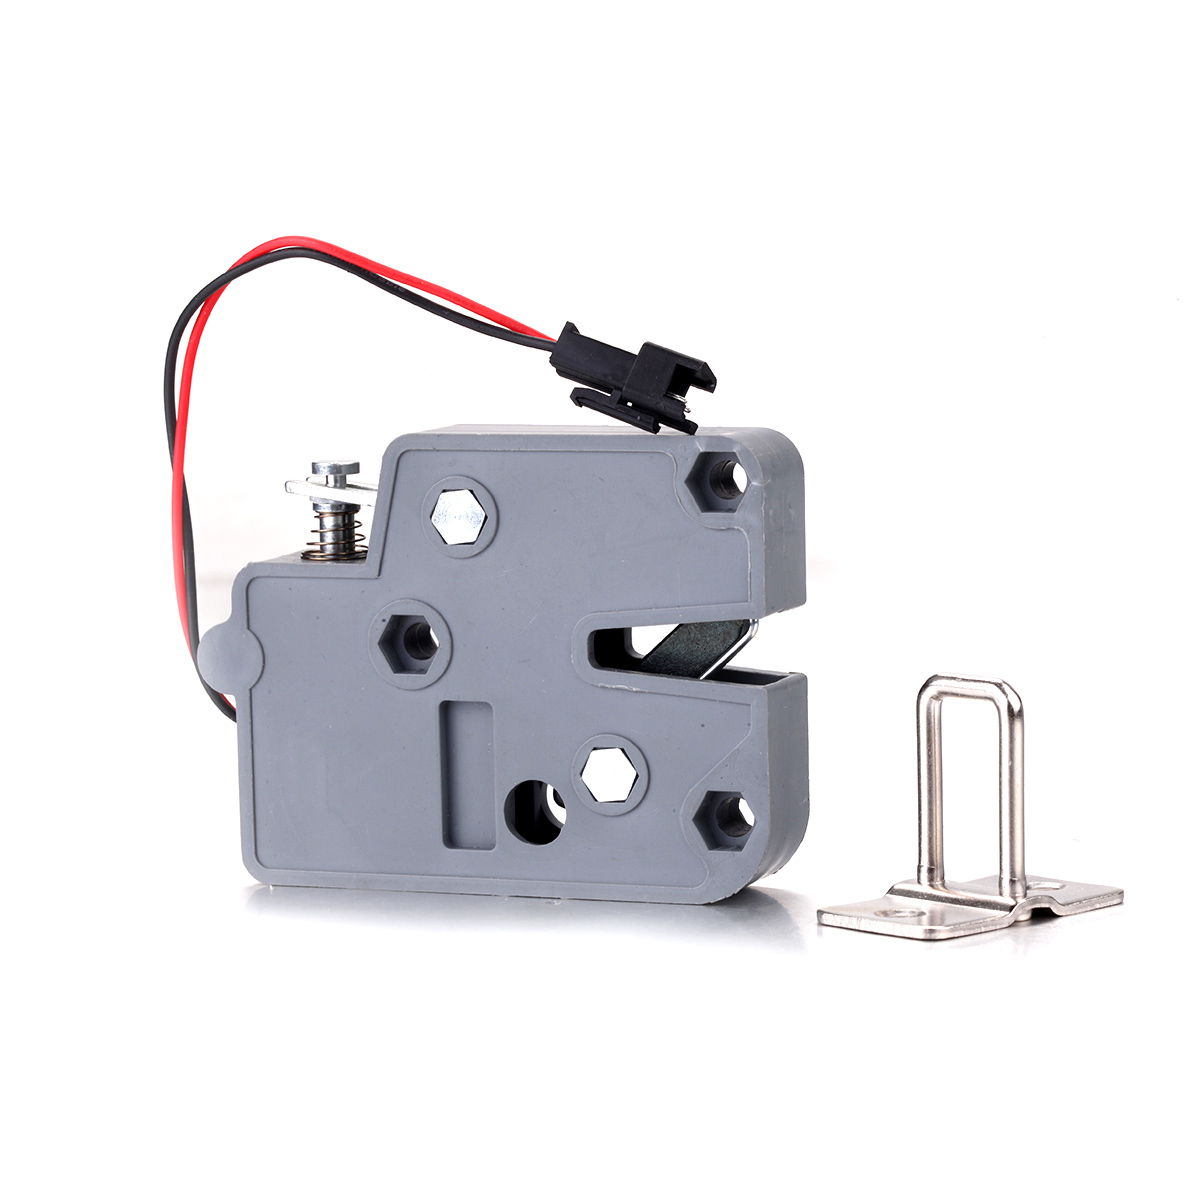 Energetic 2019 New Dc 12v 0.5a Mini Electric Magnetic Cabinet Bolt Push-pull Lock Release Assembly Solenoid Access Control To Enjoy High Reputation In The International Market Security & Protection Electric Lock